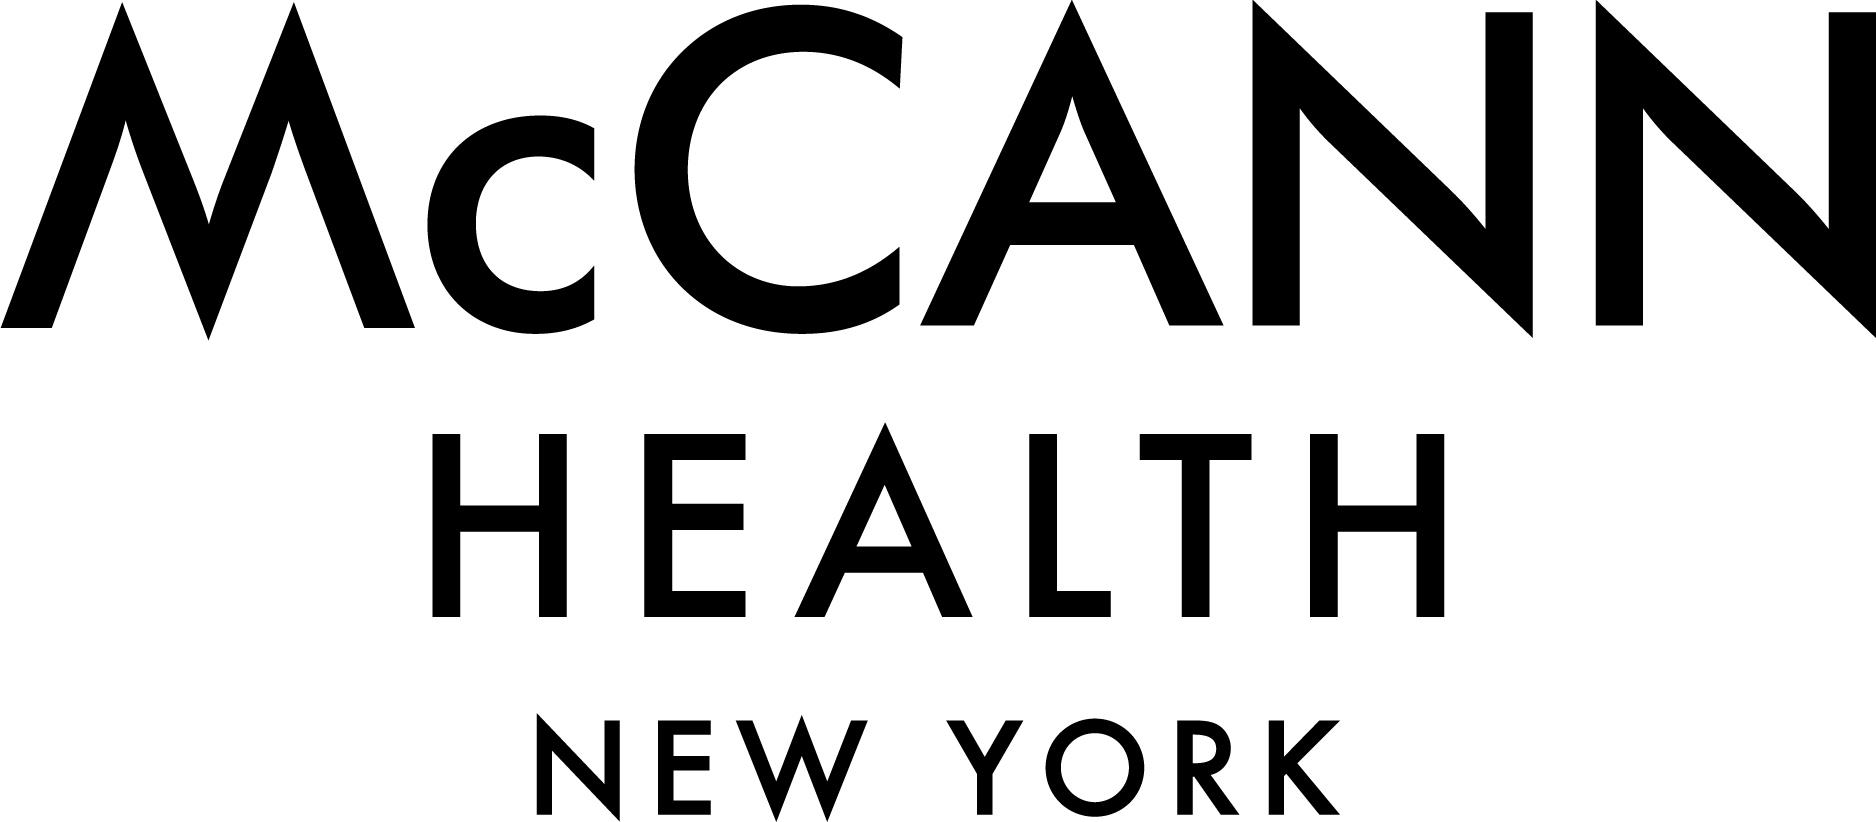 McCann Health New York